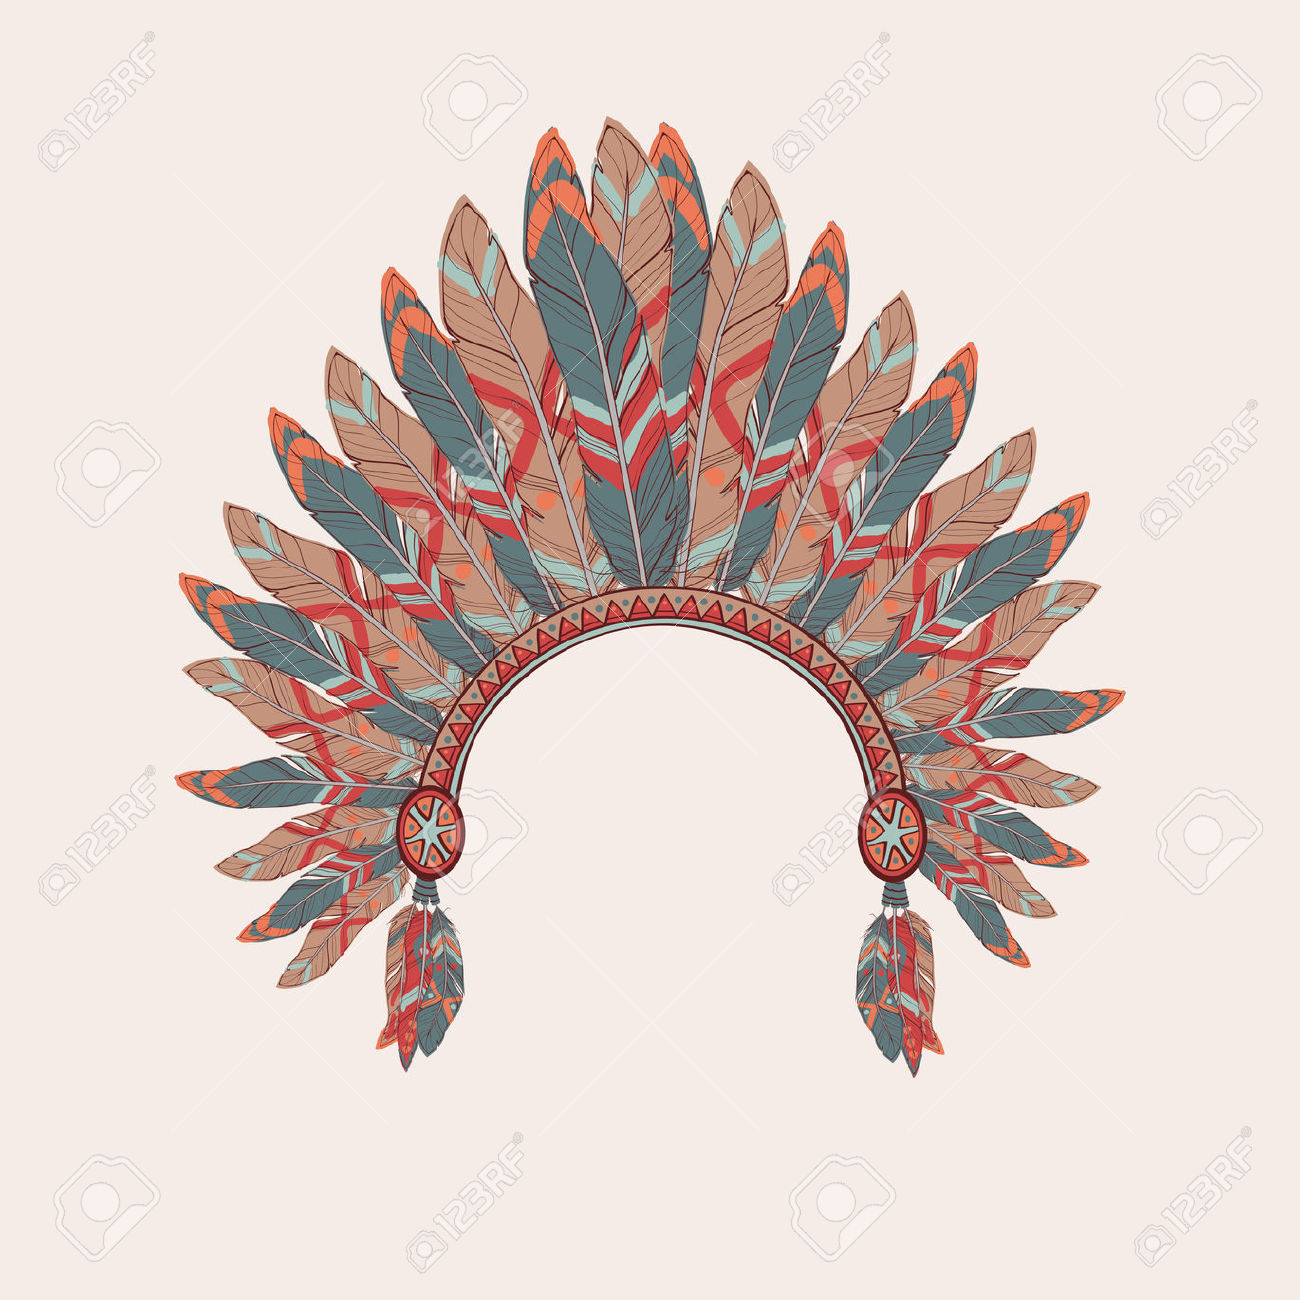 Native American clipart indian tailor  Search Google drawing Google